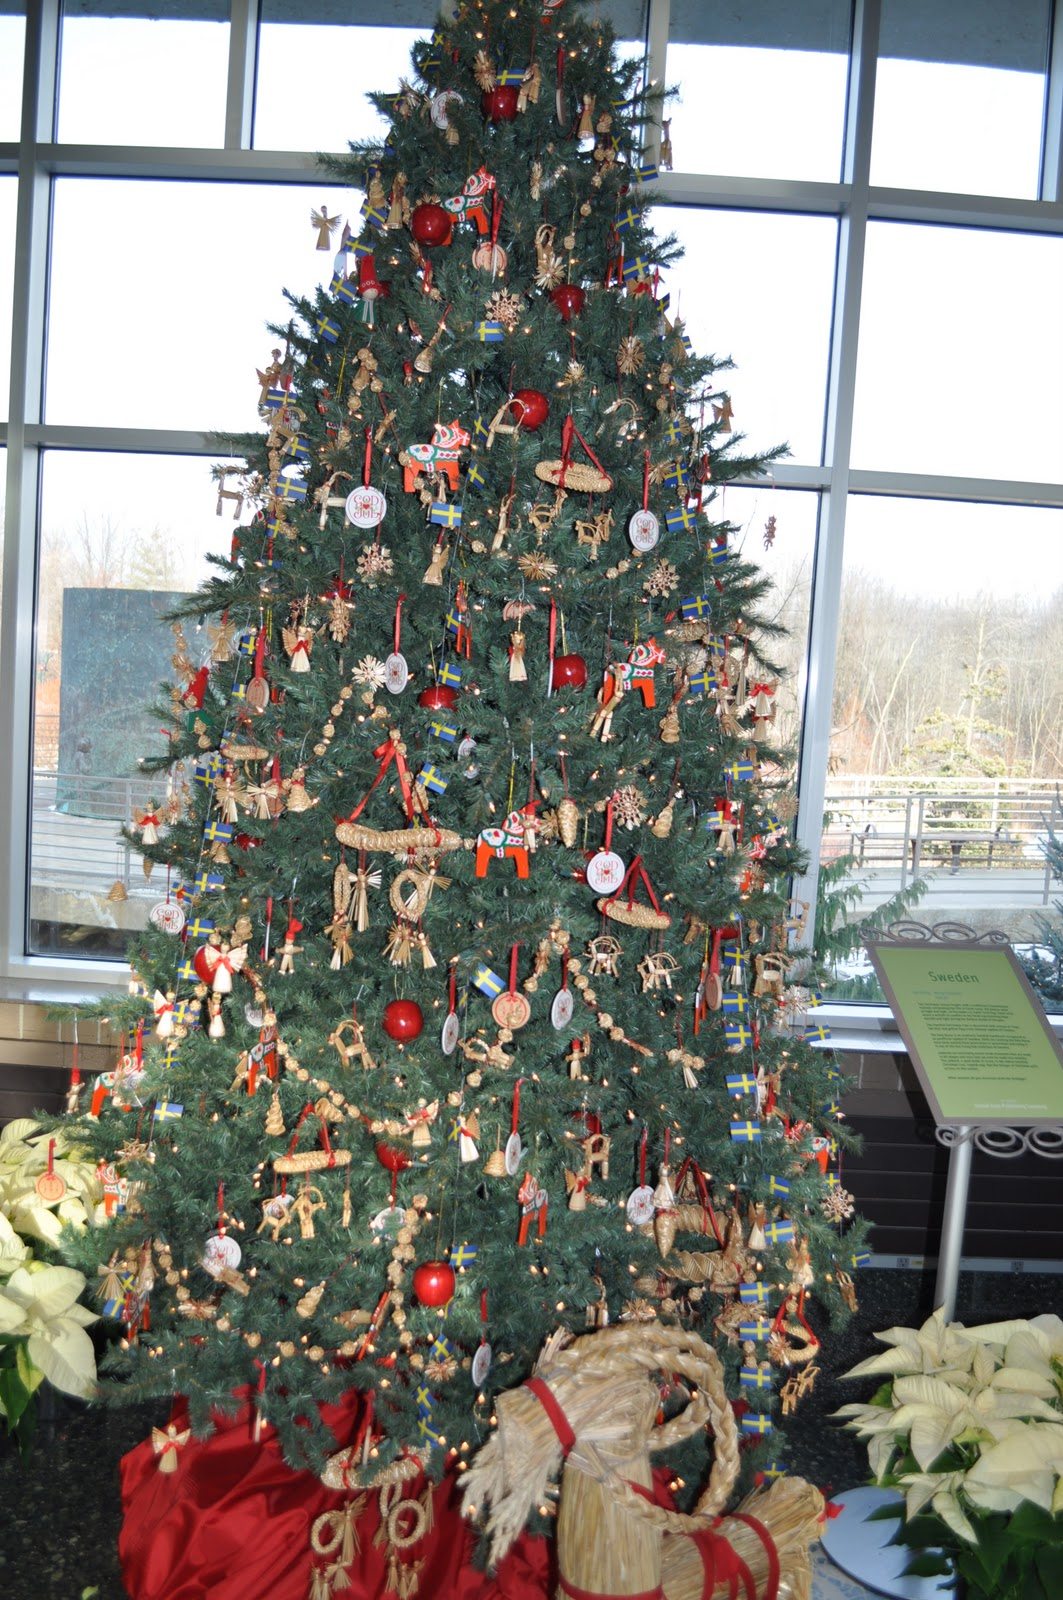 Michigan Cottage Cook: CHRISTMAS TREES FROM SOUTH KOREA ...